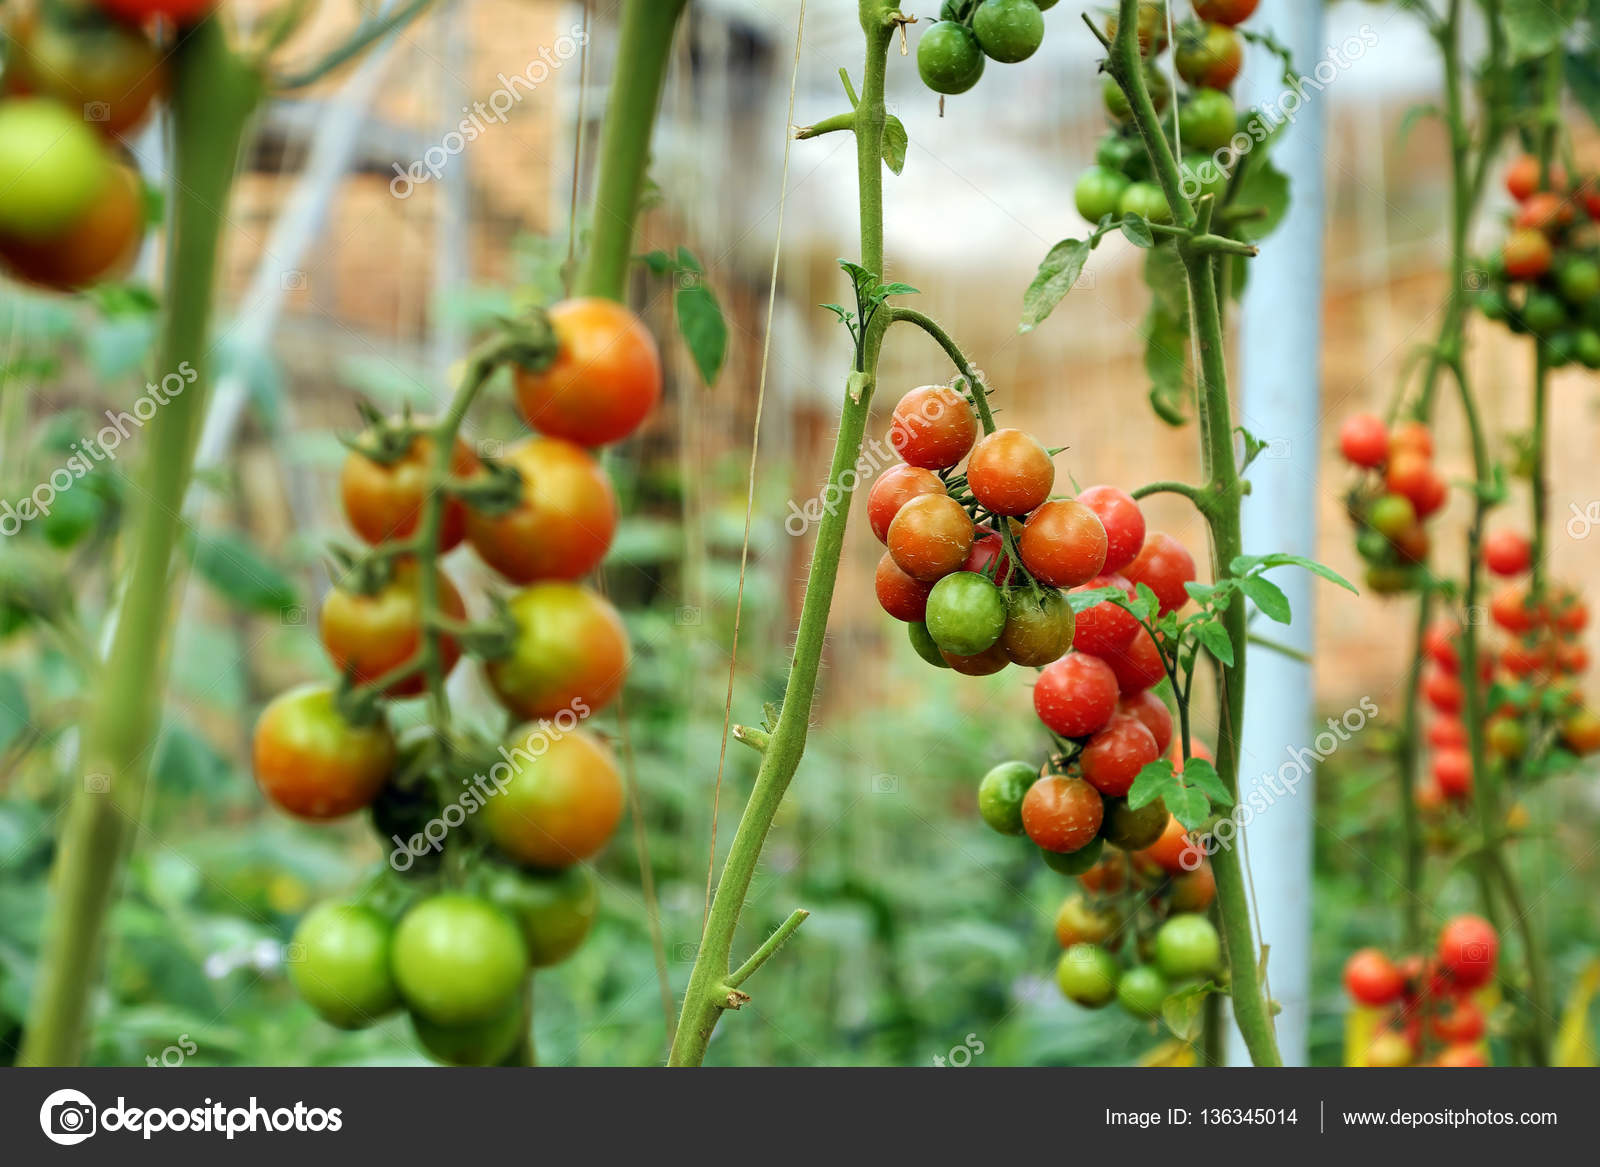 horizontal orientation kitchen of tomato vegetable open photo growing in plant garden stock young image ground